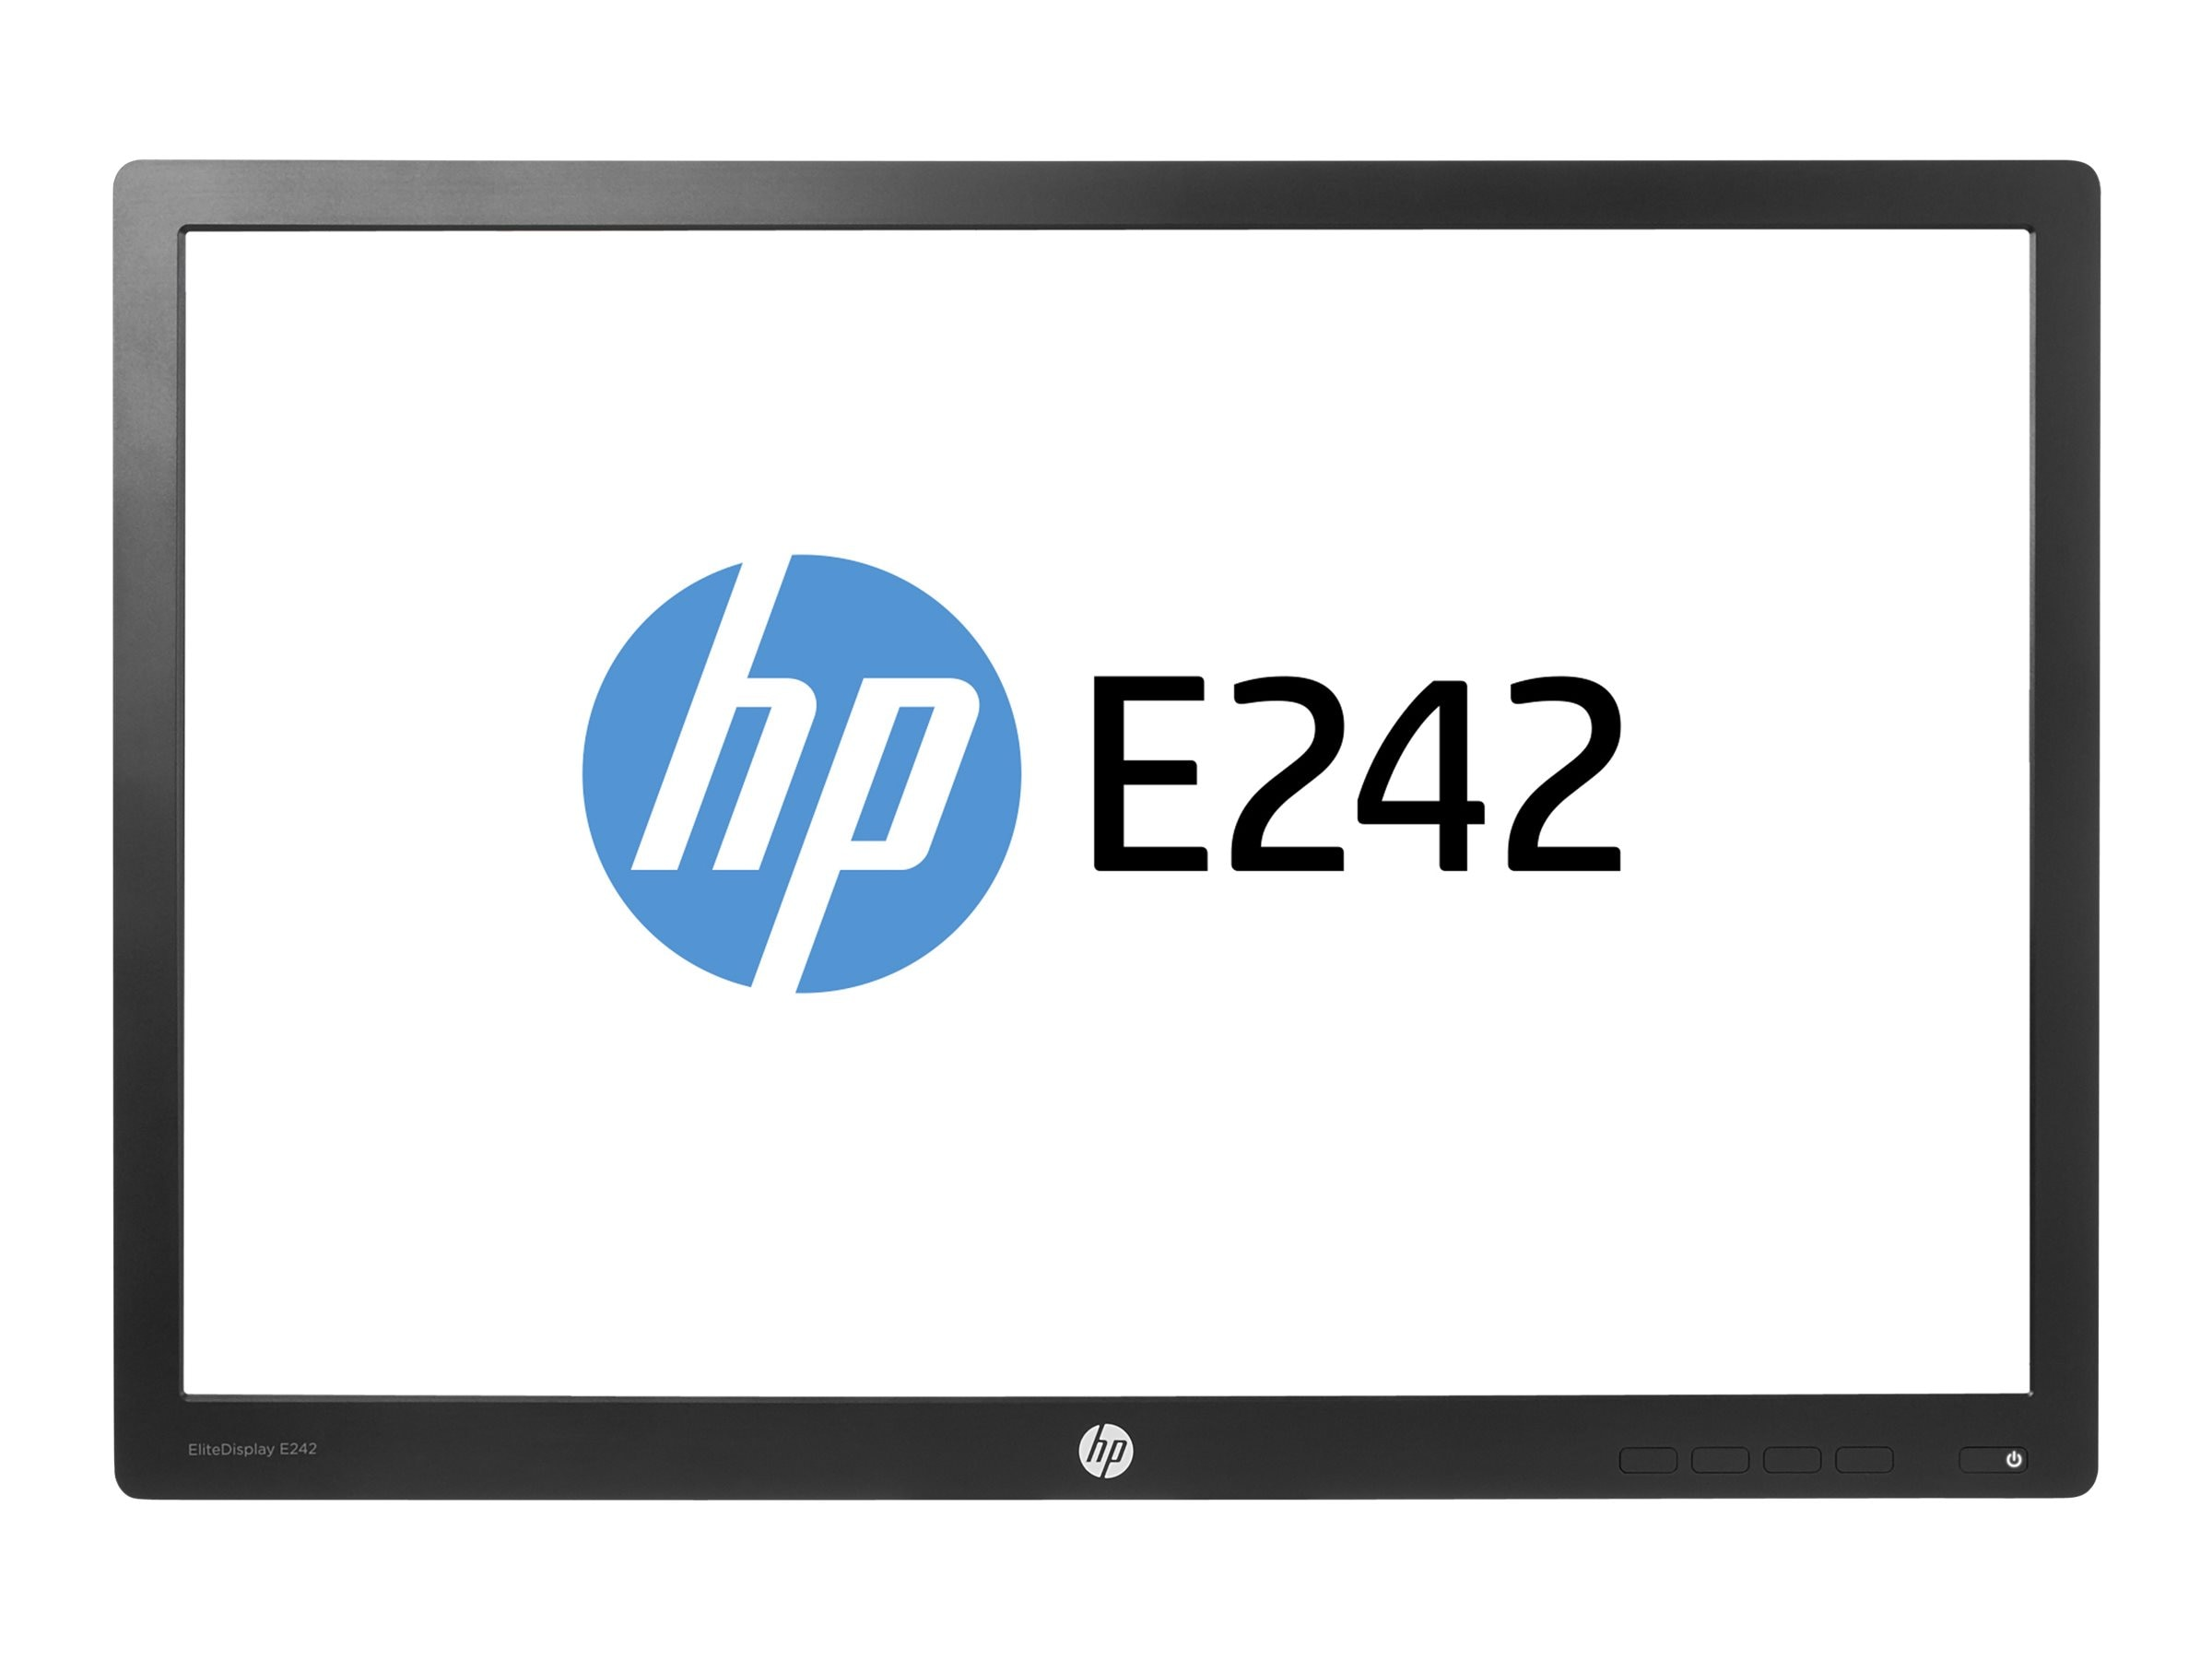 Open Box HP 24 E242 Full HD LED-LCD Monitor, Black (Head Only), N0Q25A8#ABA, 31029068, Monitors - LED-LCD